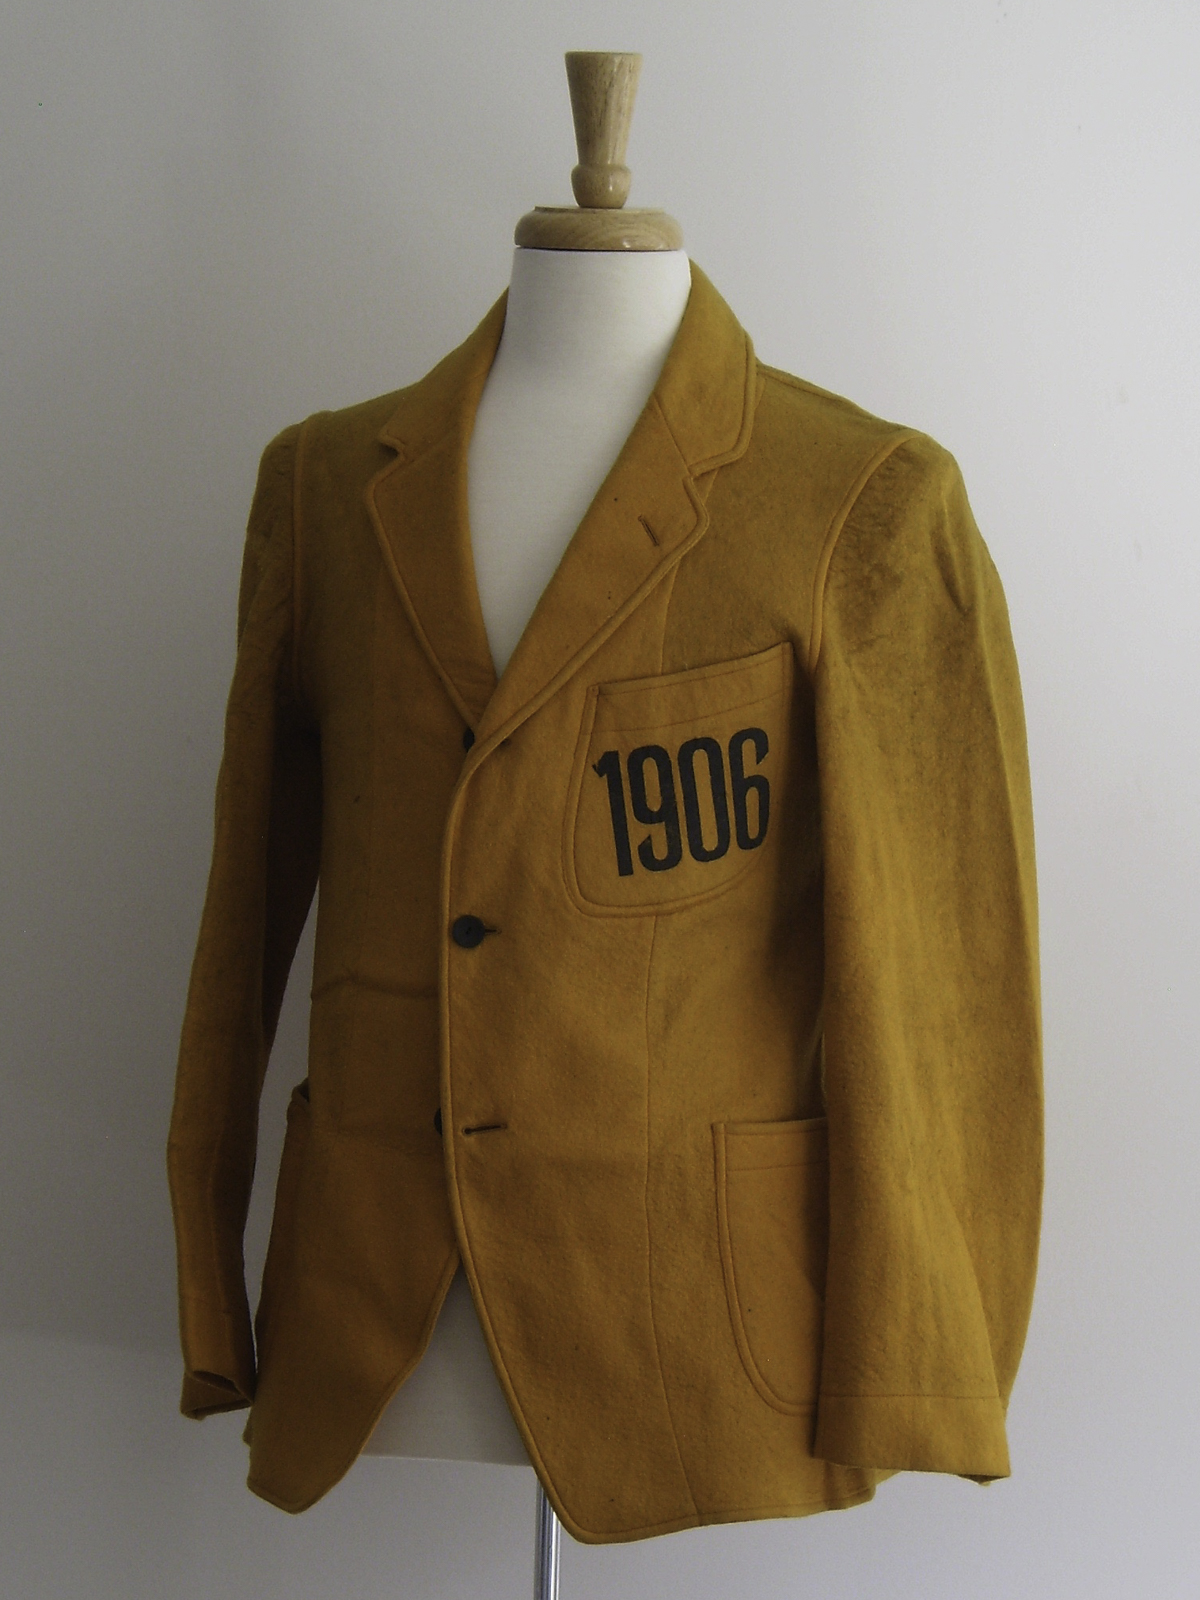 Reunion Jacket 1906 Front